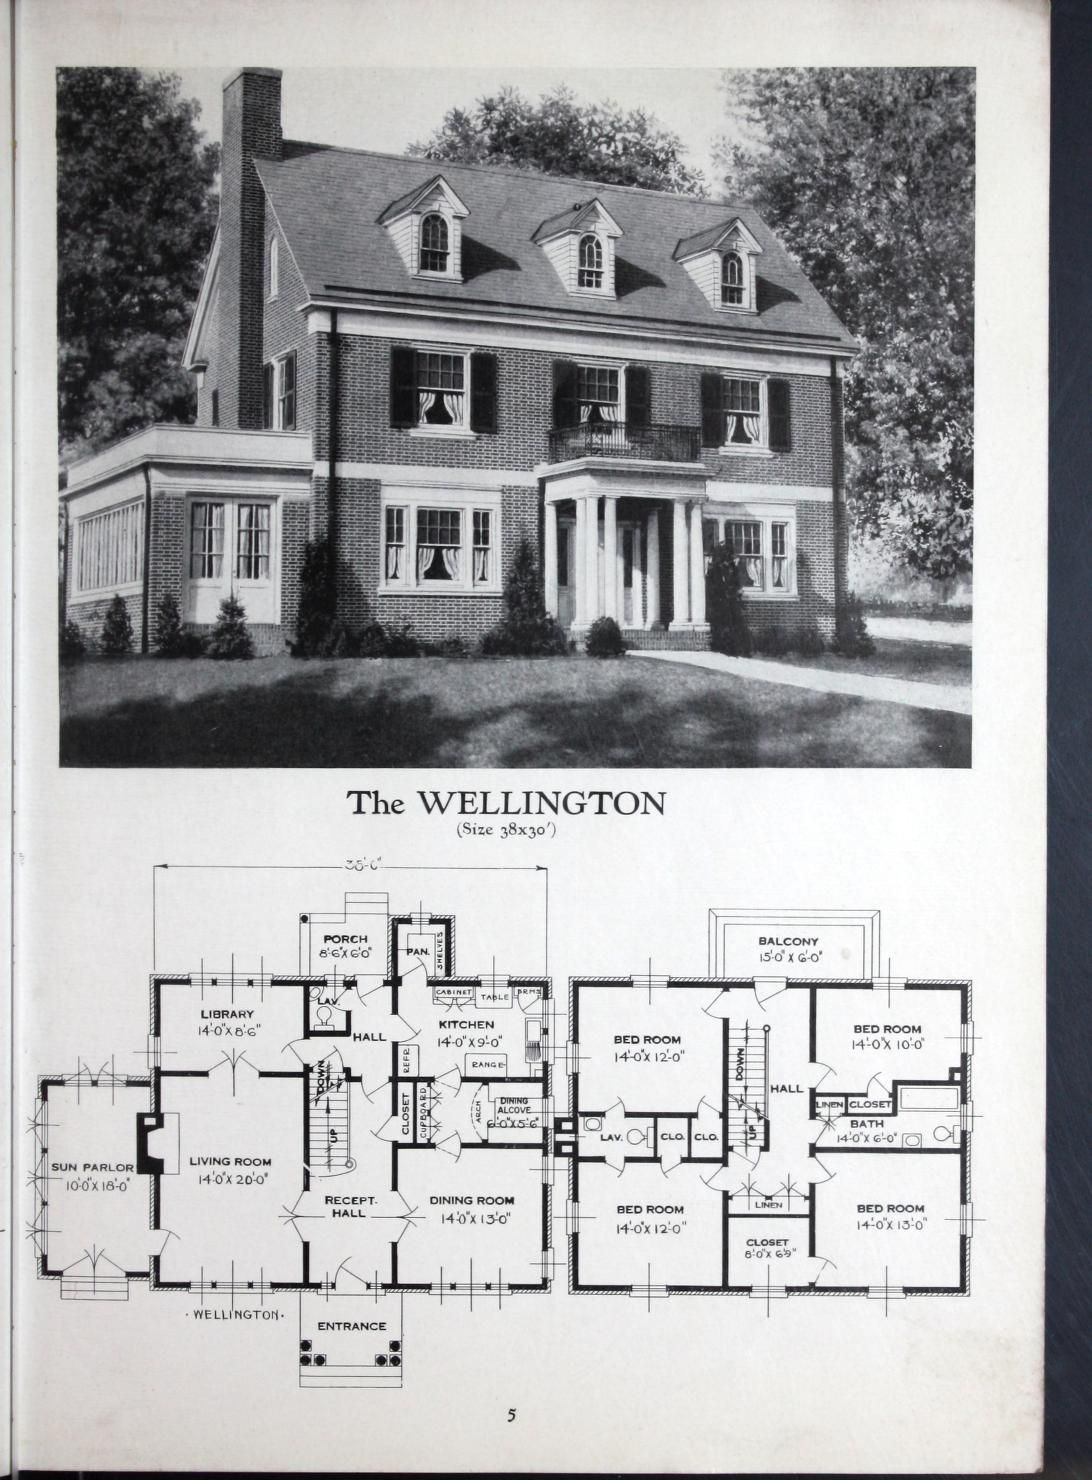 Homes Of Brick And Stucco Standard Homes Company Free Download Borrow And Streaming Internet Colonial House Plans Sims House Plans Vintage House Plans